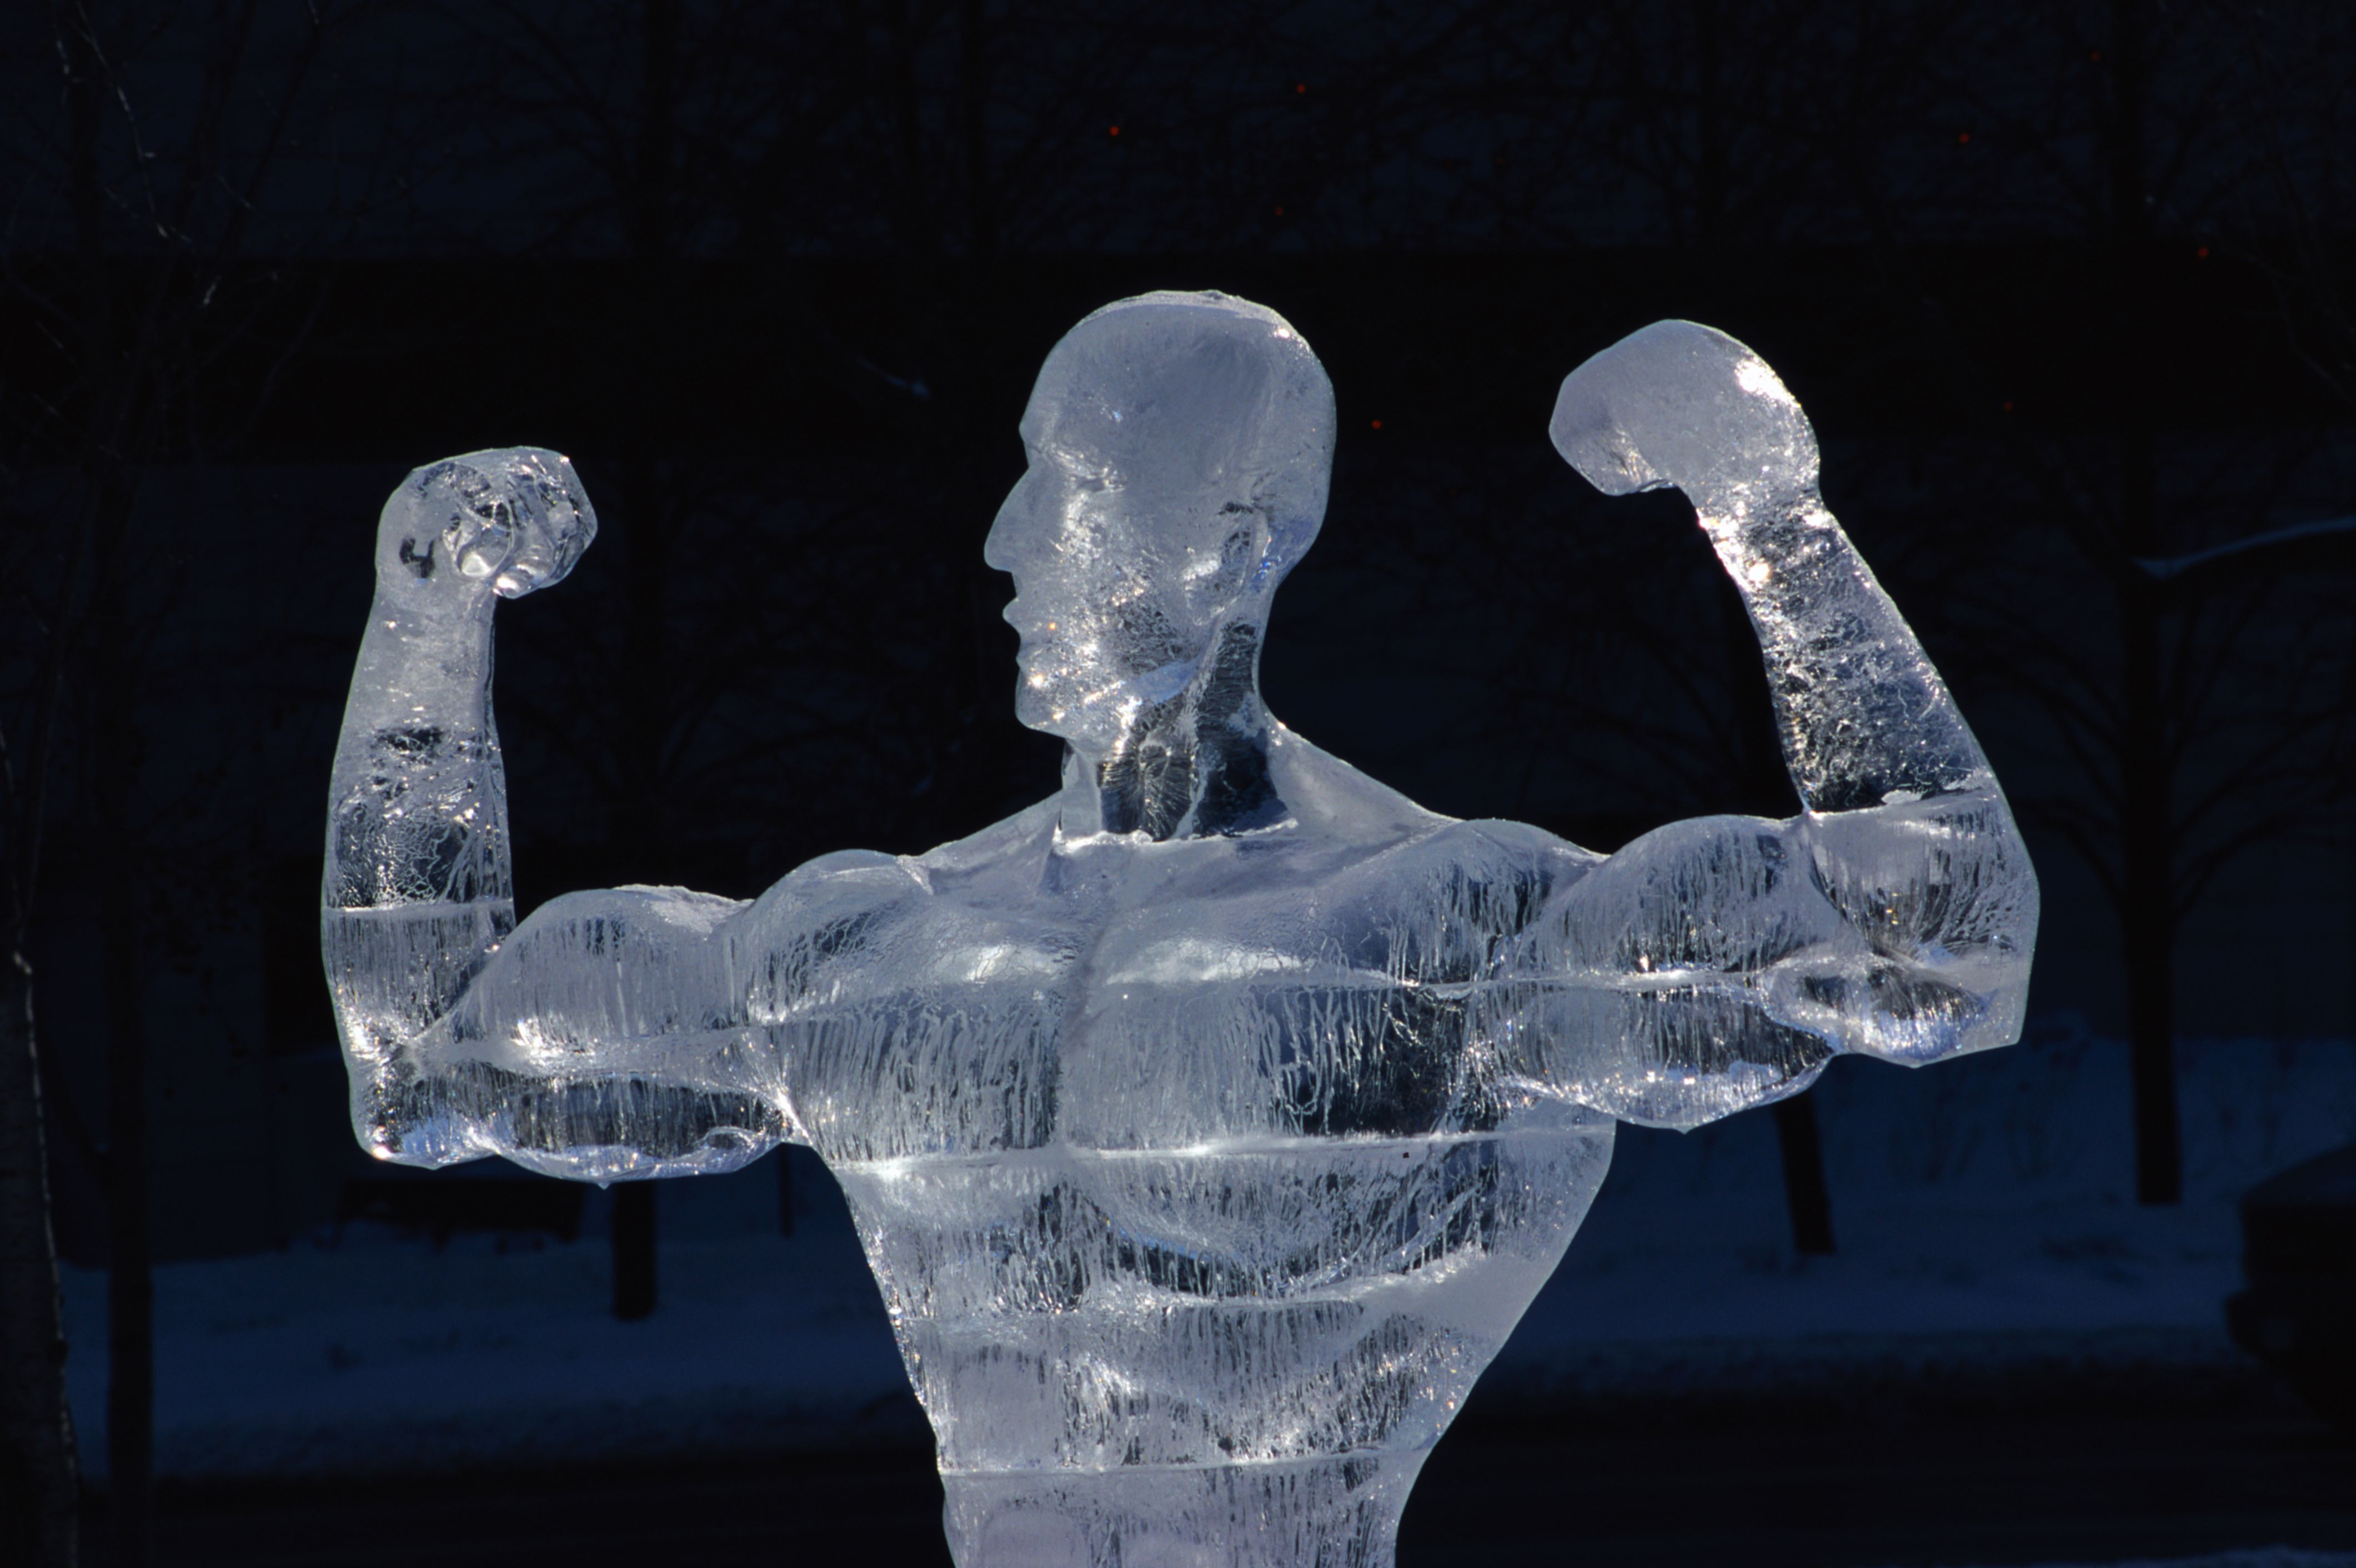 Ice Sculpture of Man Flexing Muscles